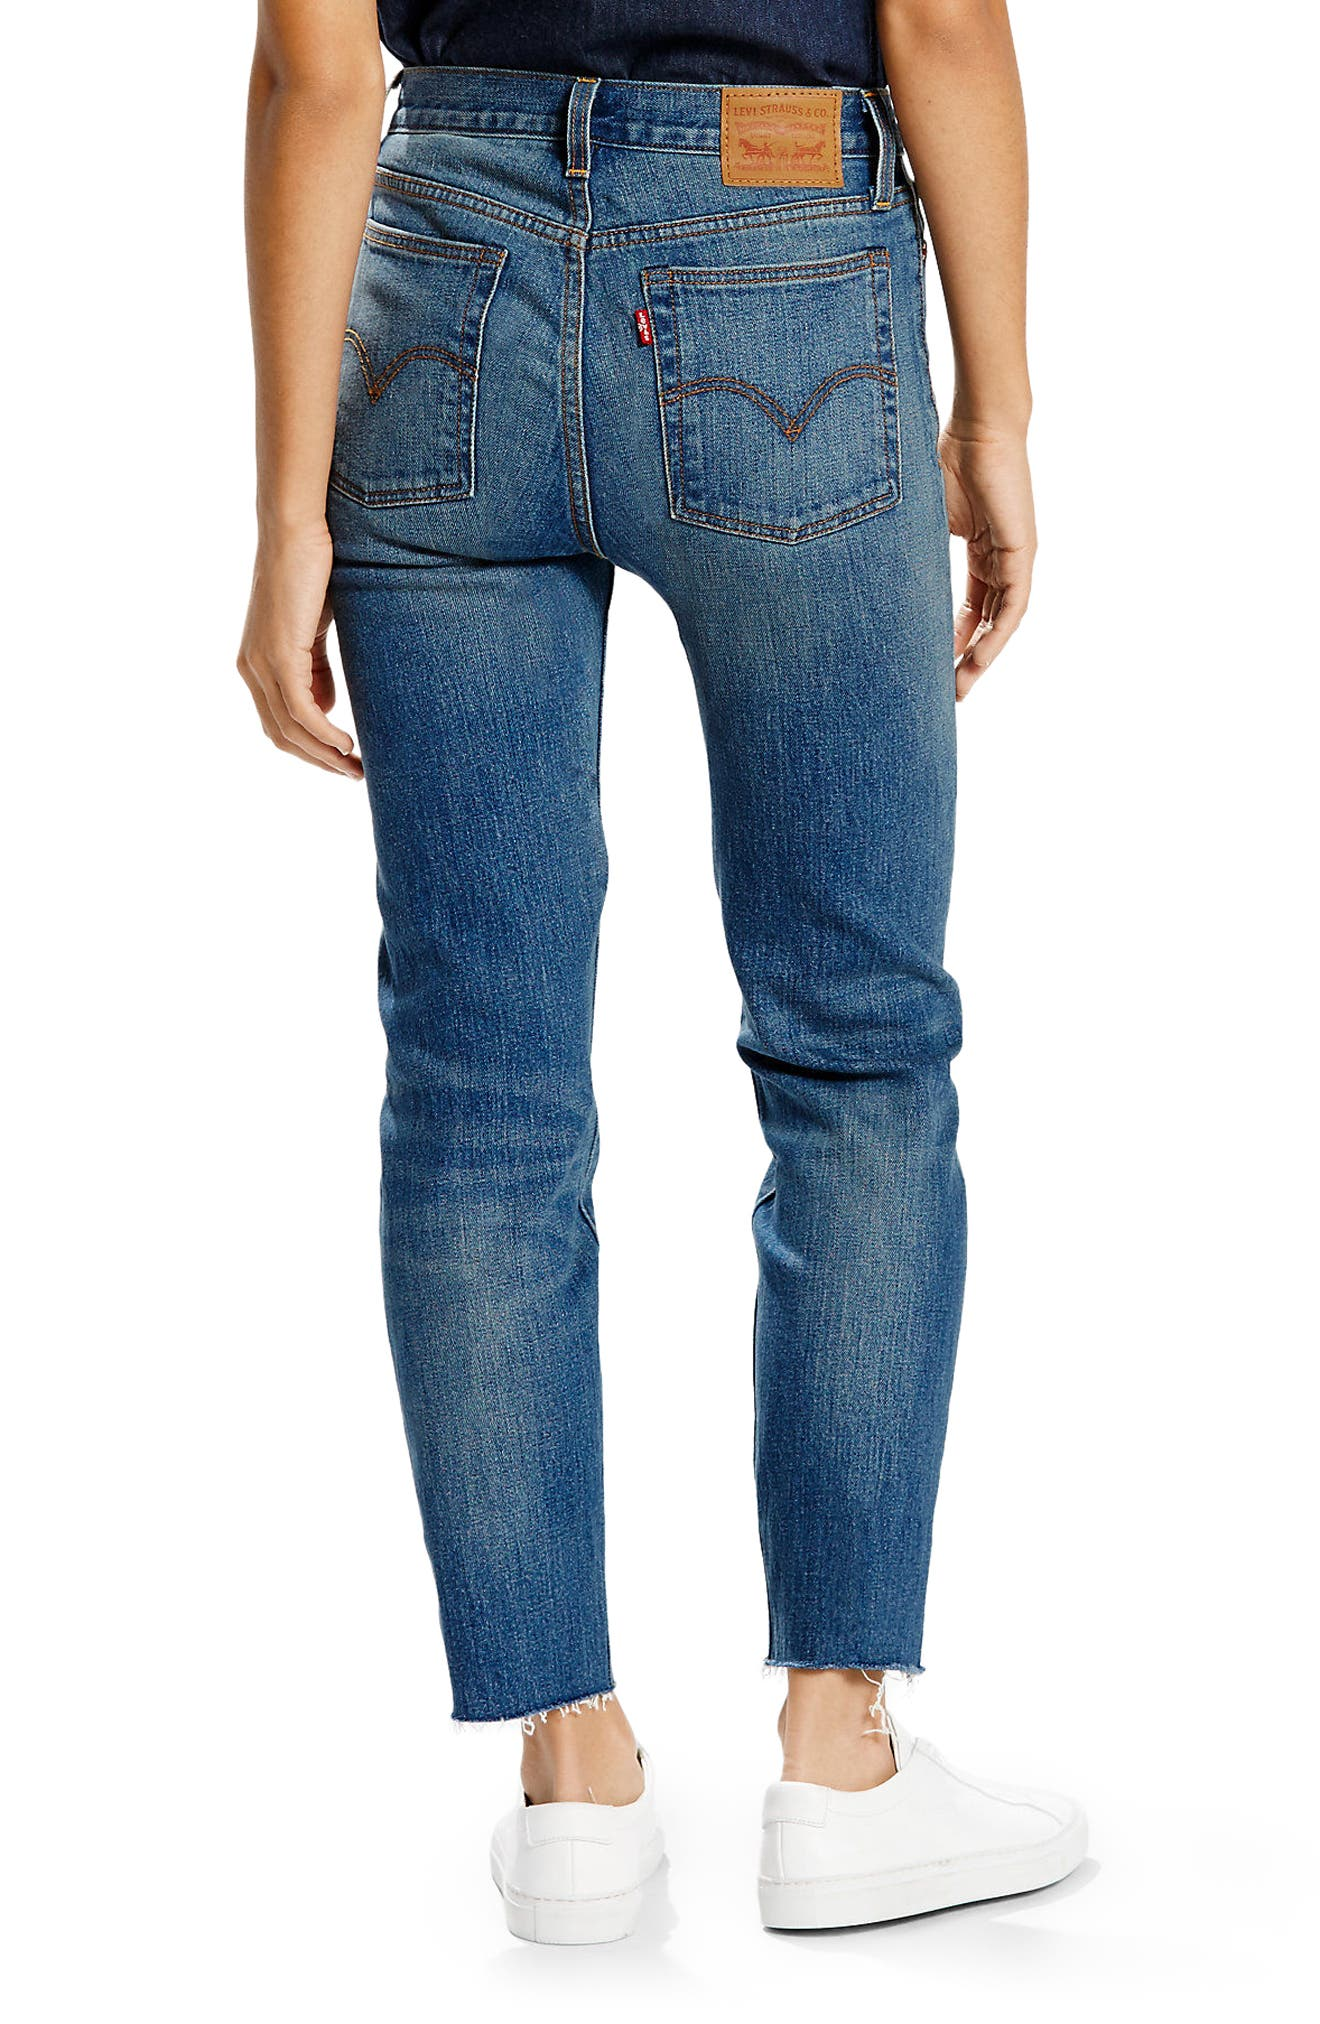 Wedgie High Waist Straight Jeans,                             Alternate thumbnail 2, color,                             Classic Tint